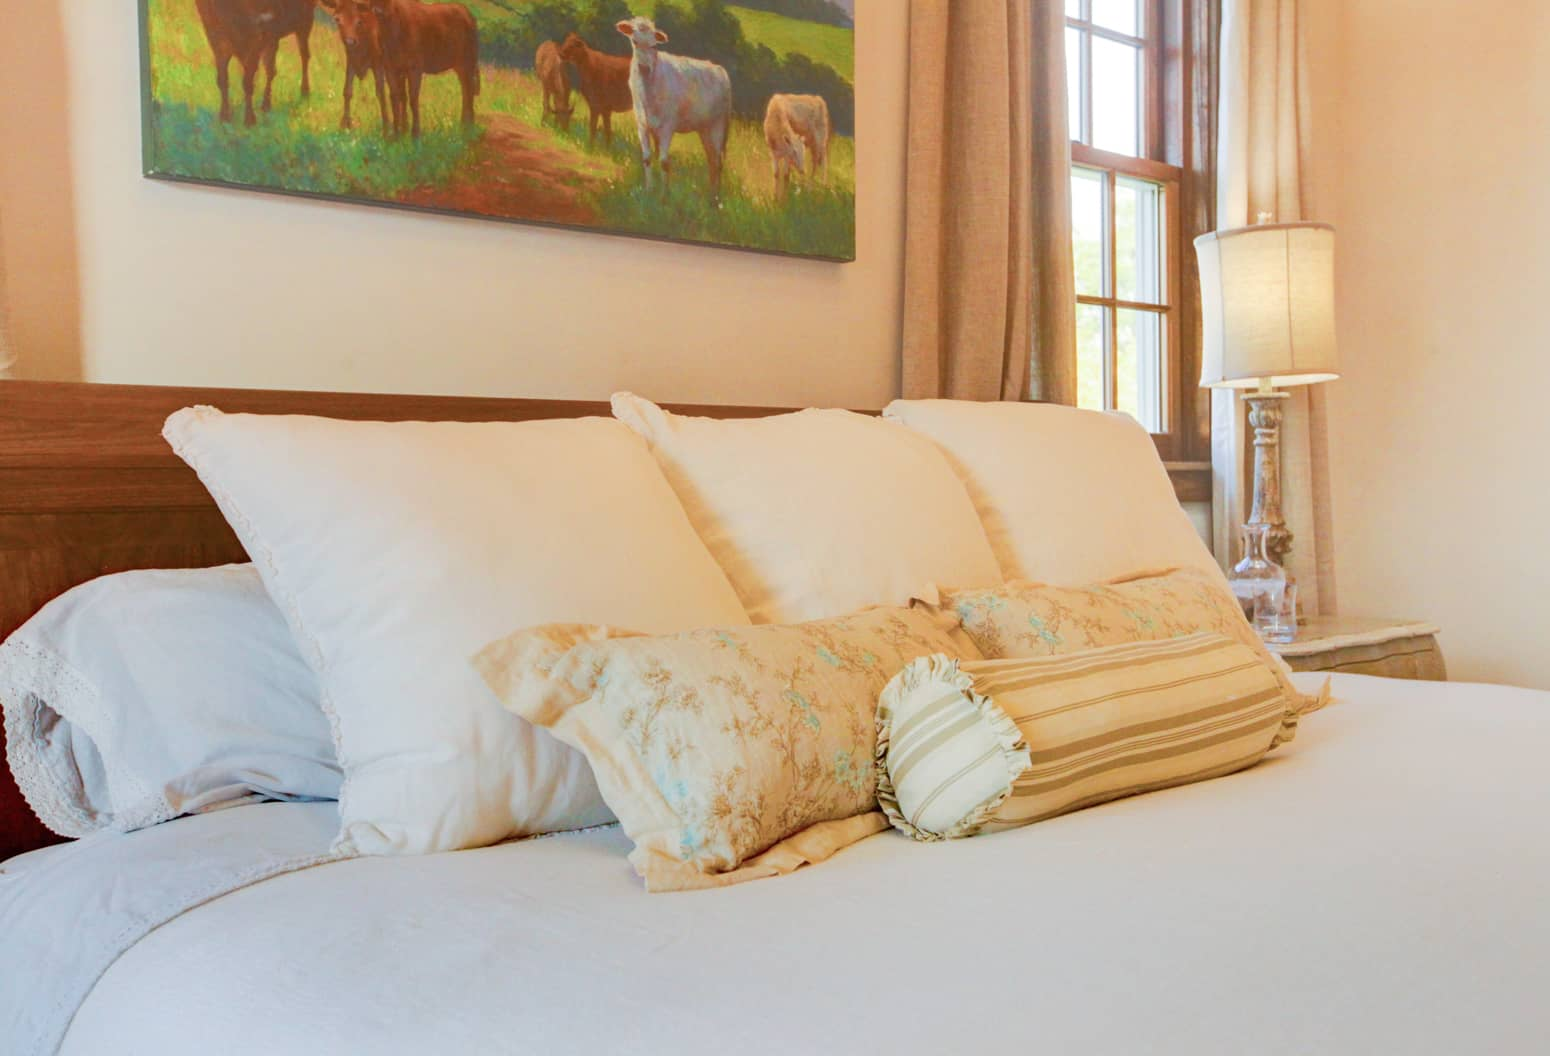 Lexington, Virginia Bed and Breakfast - Room with Beautiful Pillows